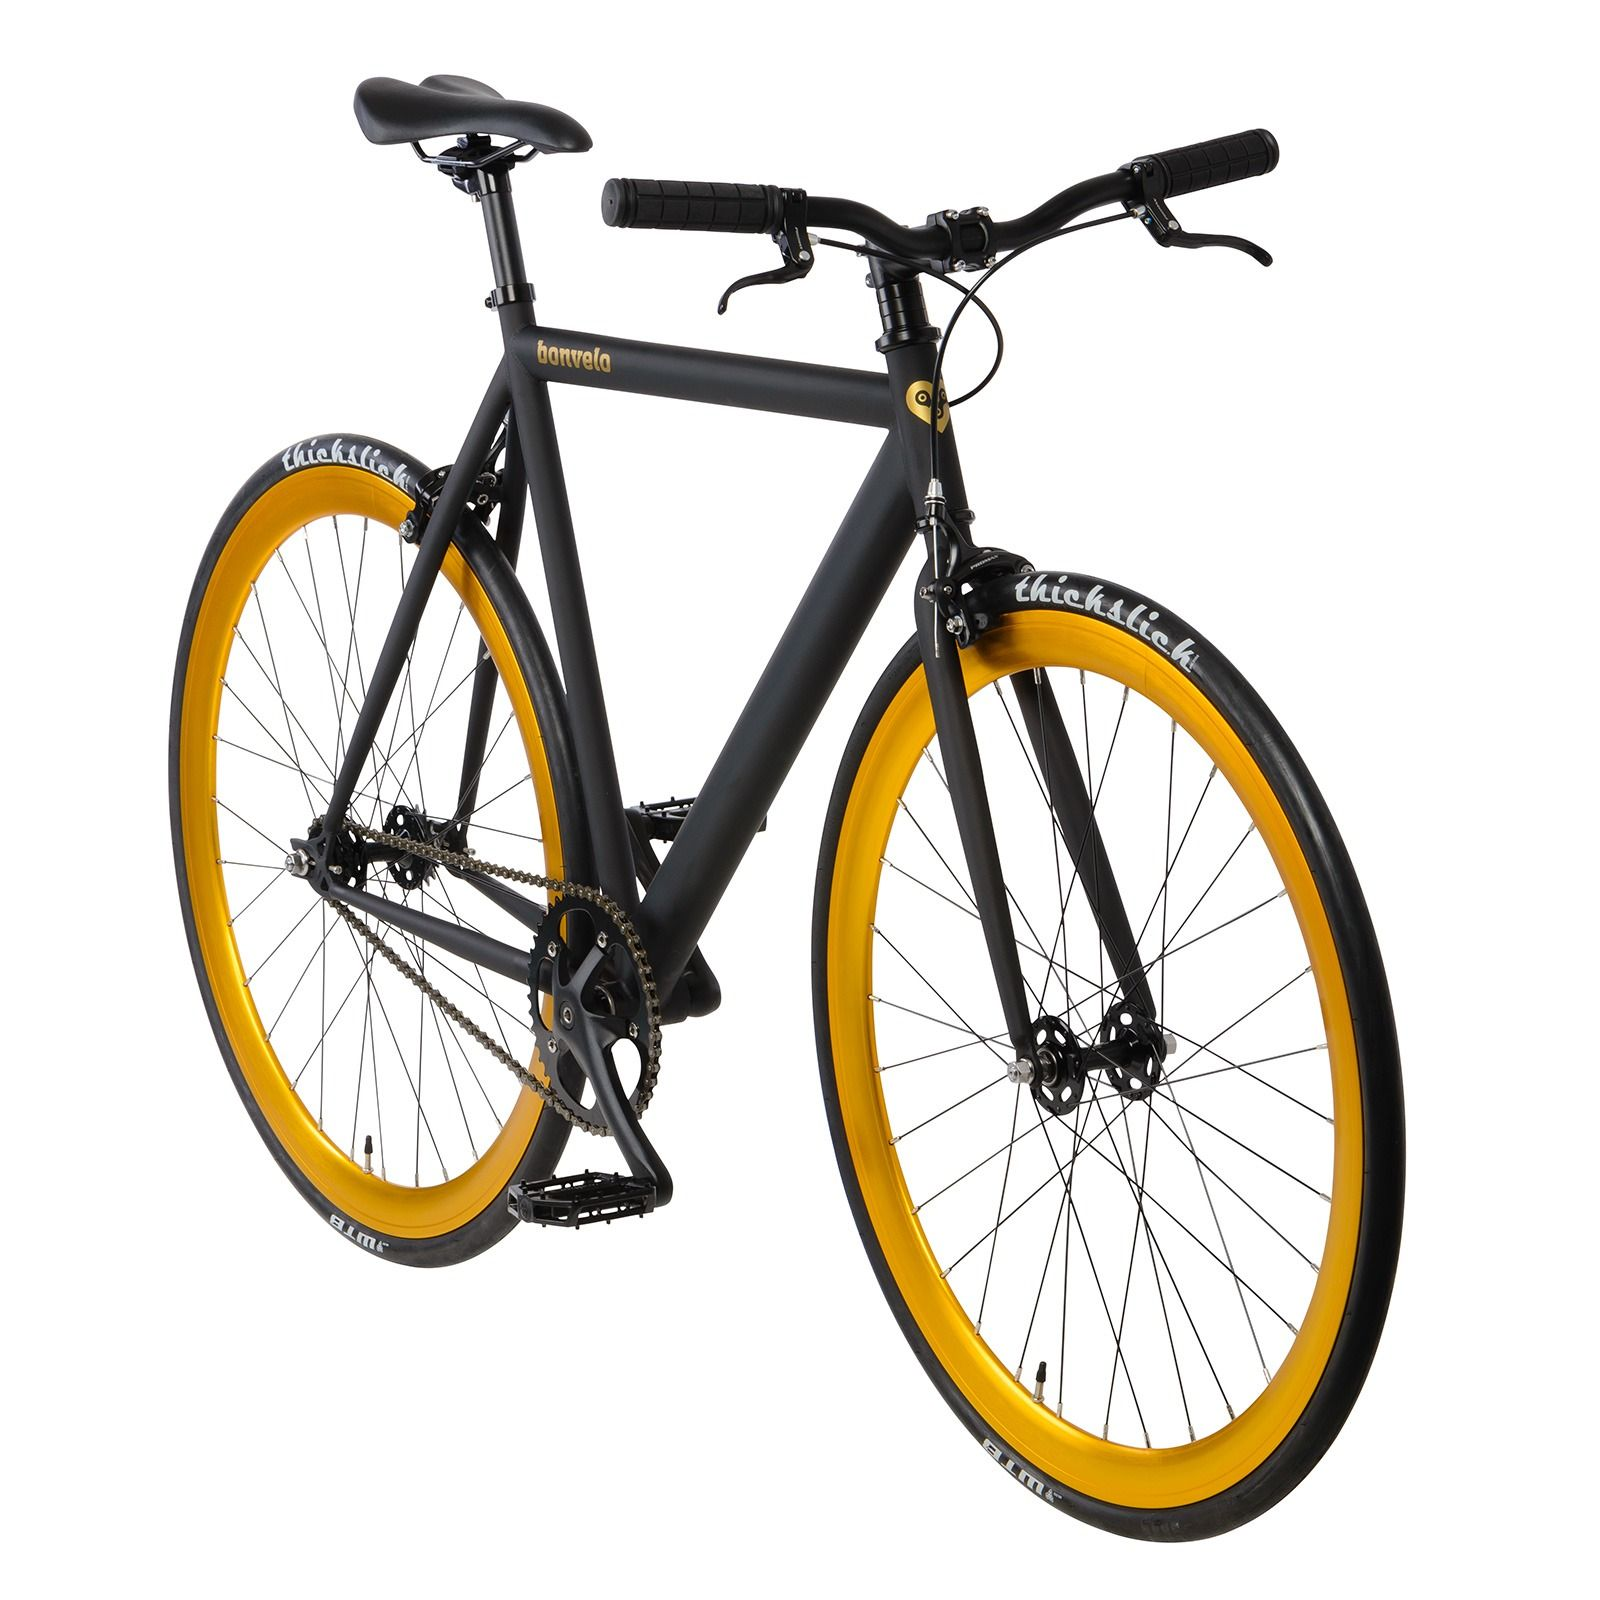 Kaufberatung Fixie / Singlespeed | recognition-software.com